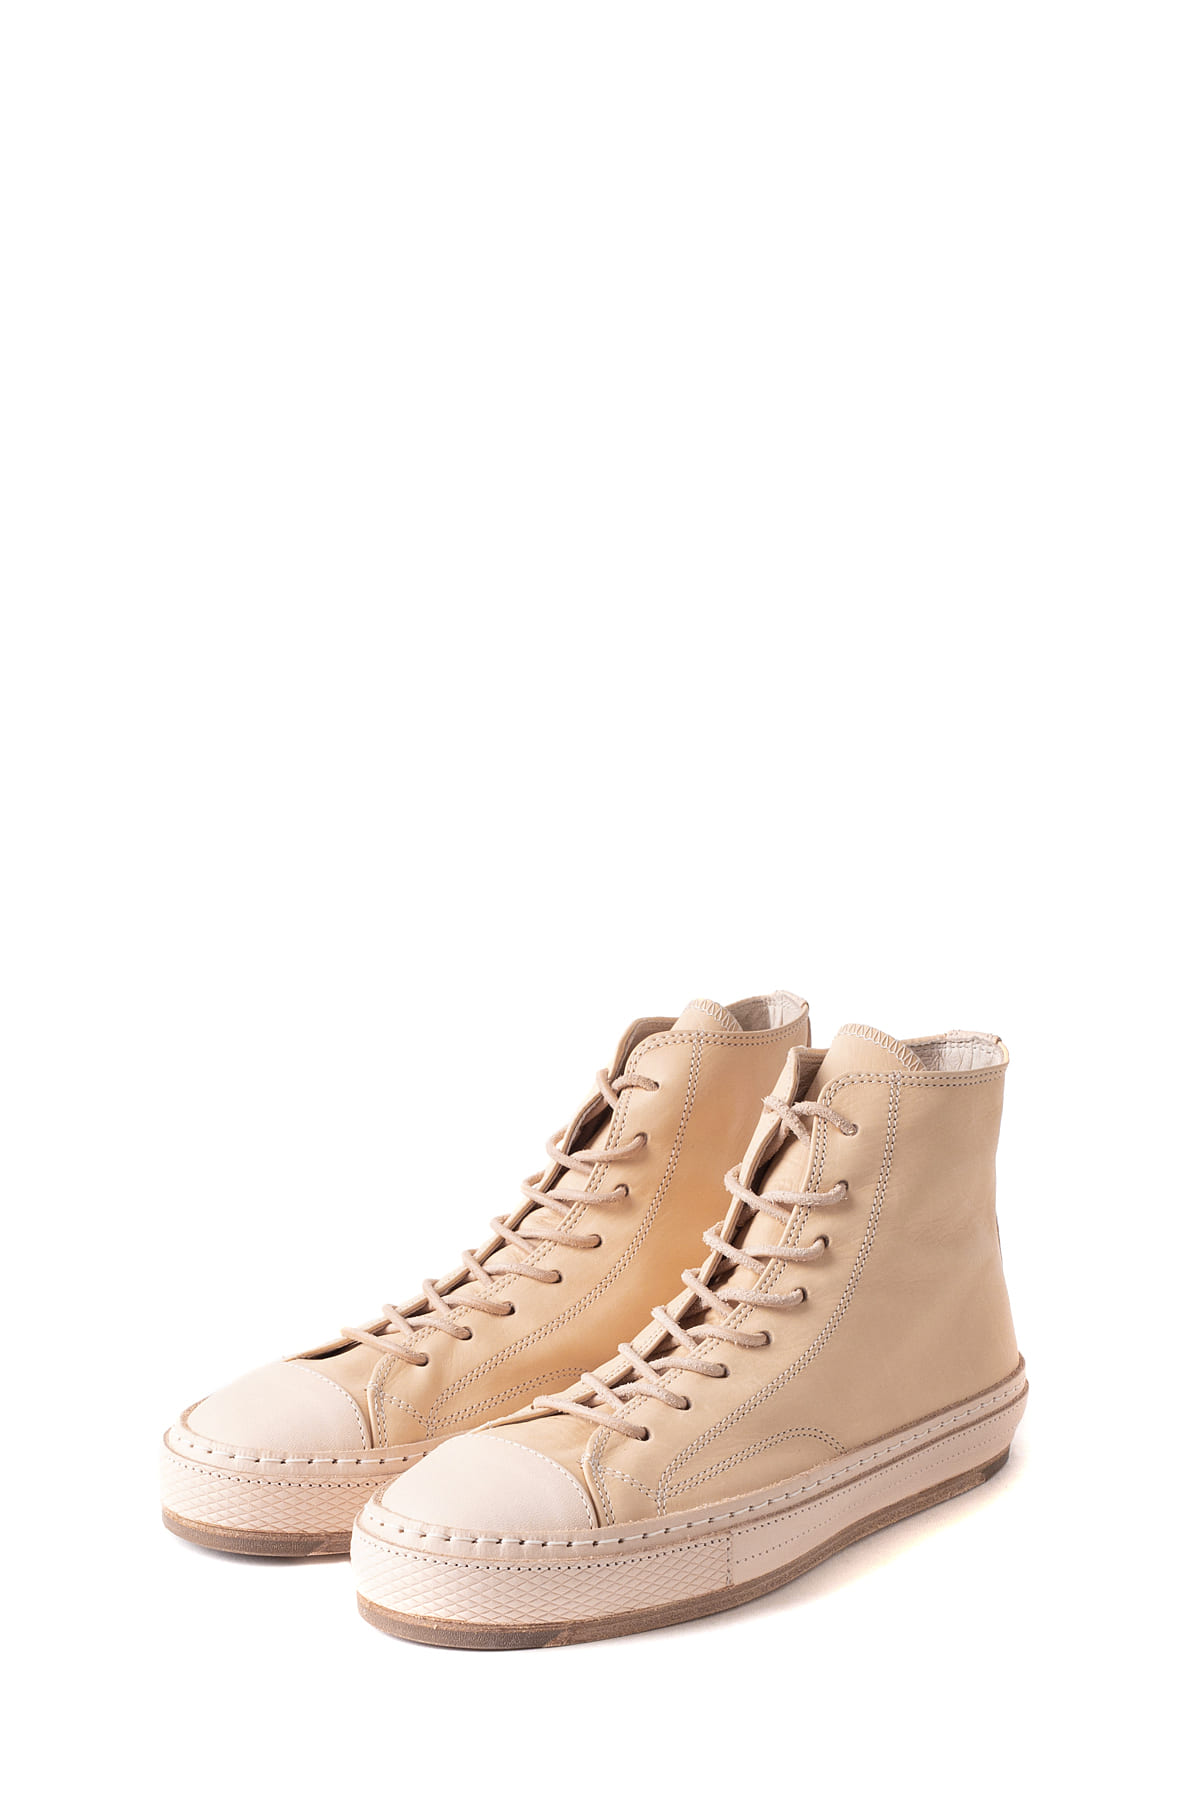 Hender Scheme : Manual Industrial Products 19 (Natural)